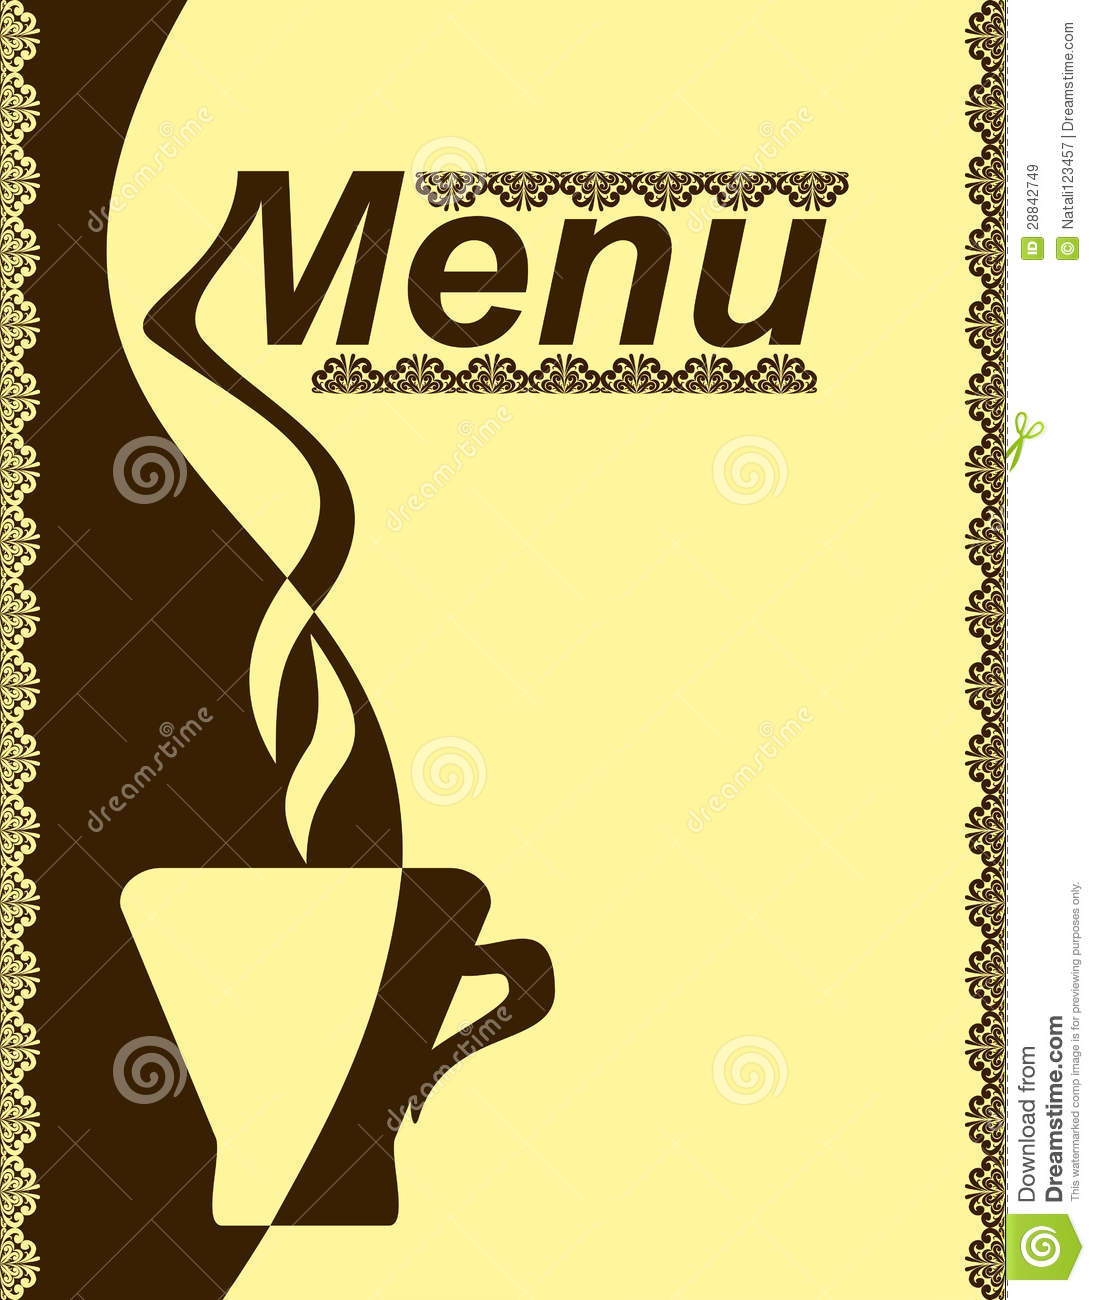 Menu Design For A Cafe. Royalty Free Stock Images - Image: 28842749